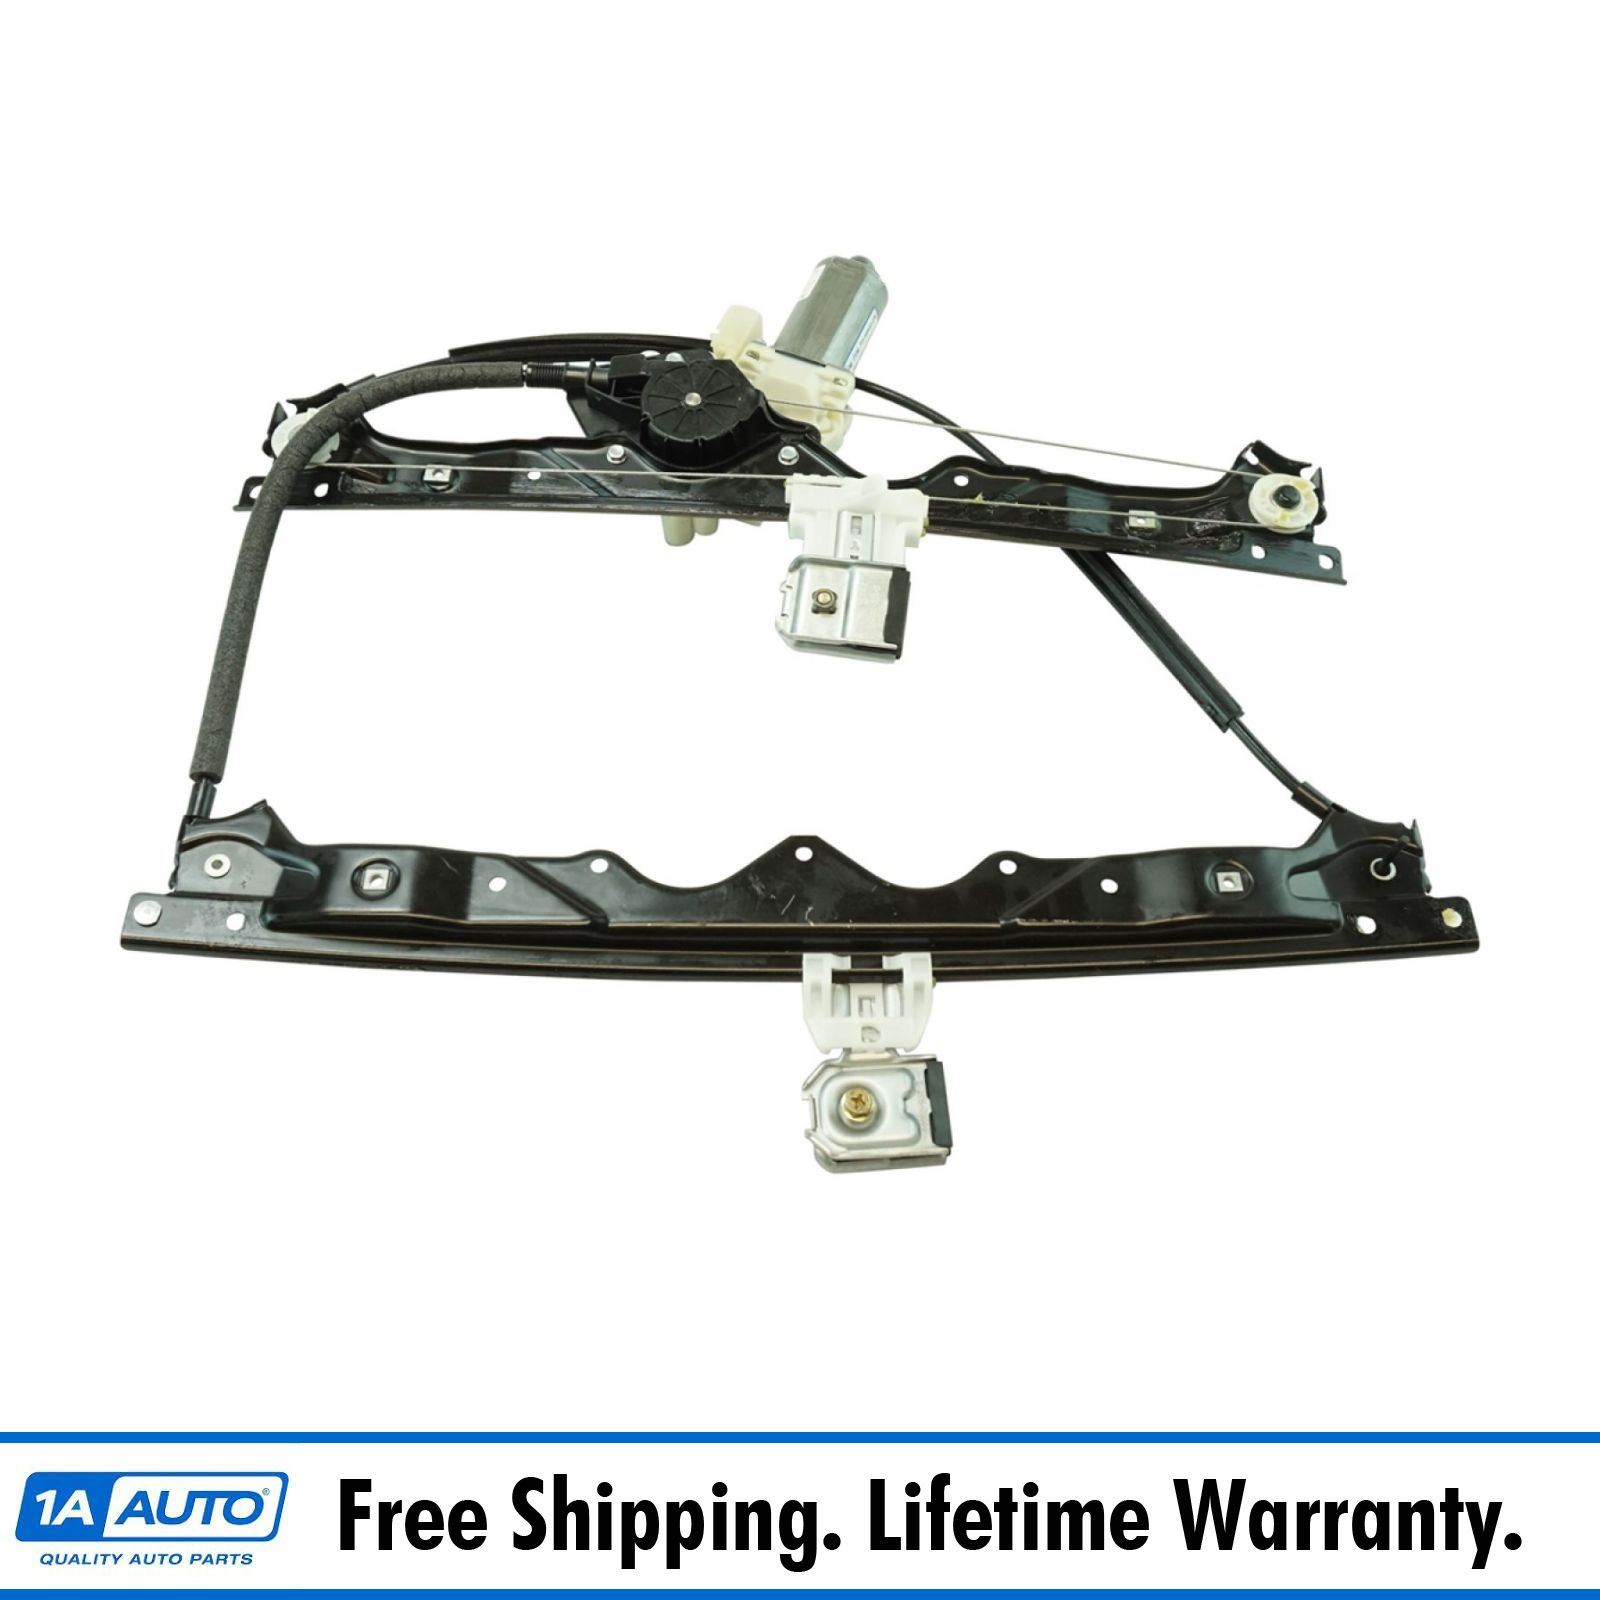 hight resolution of details about front power window regulator motor assembly rh rf side for grand cherokee new